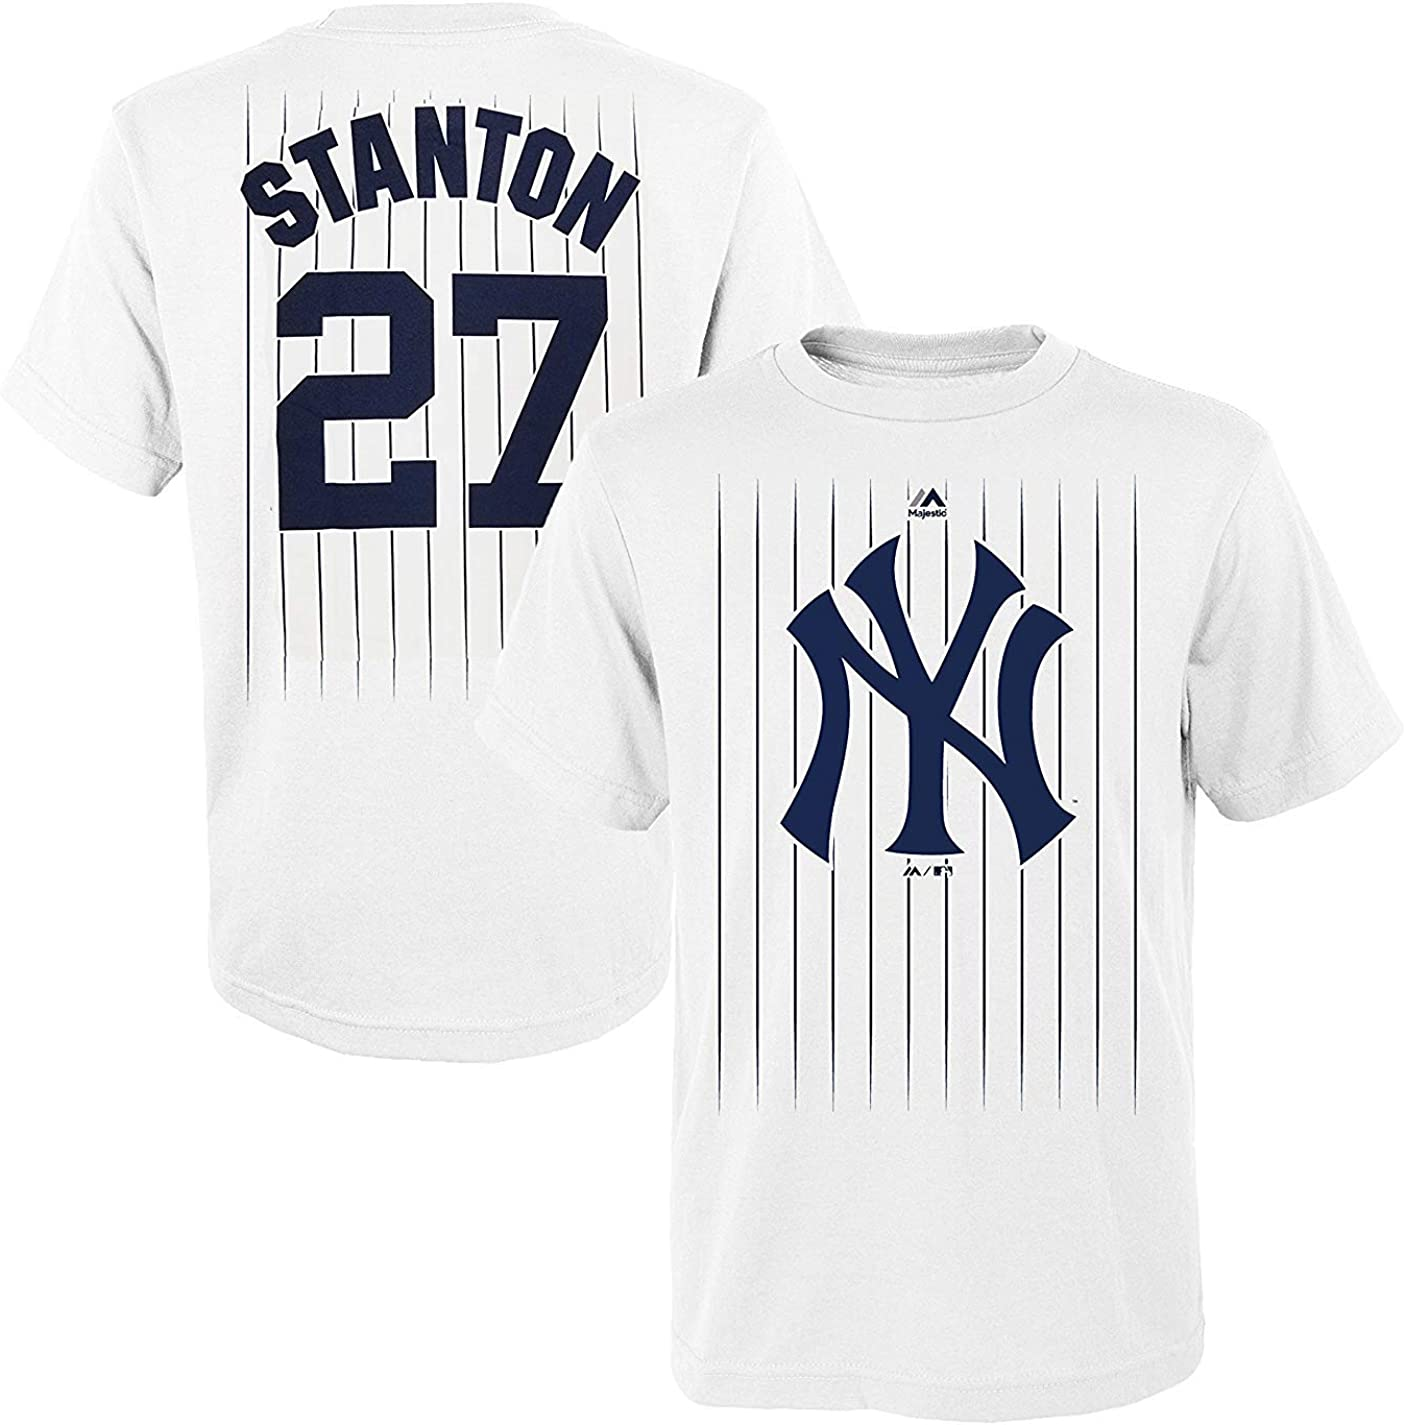 Giancarlo Stanton New York Yankees #27 White Youth Name and Number Jersey T-Shirt